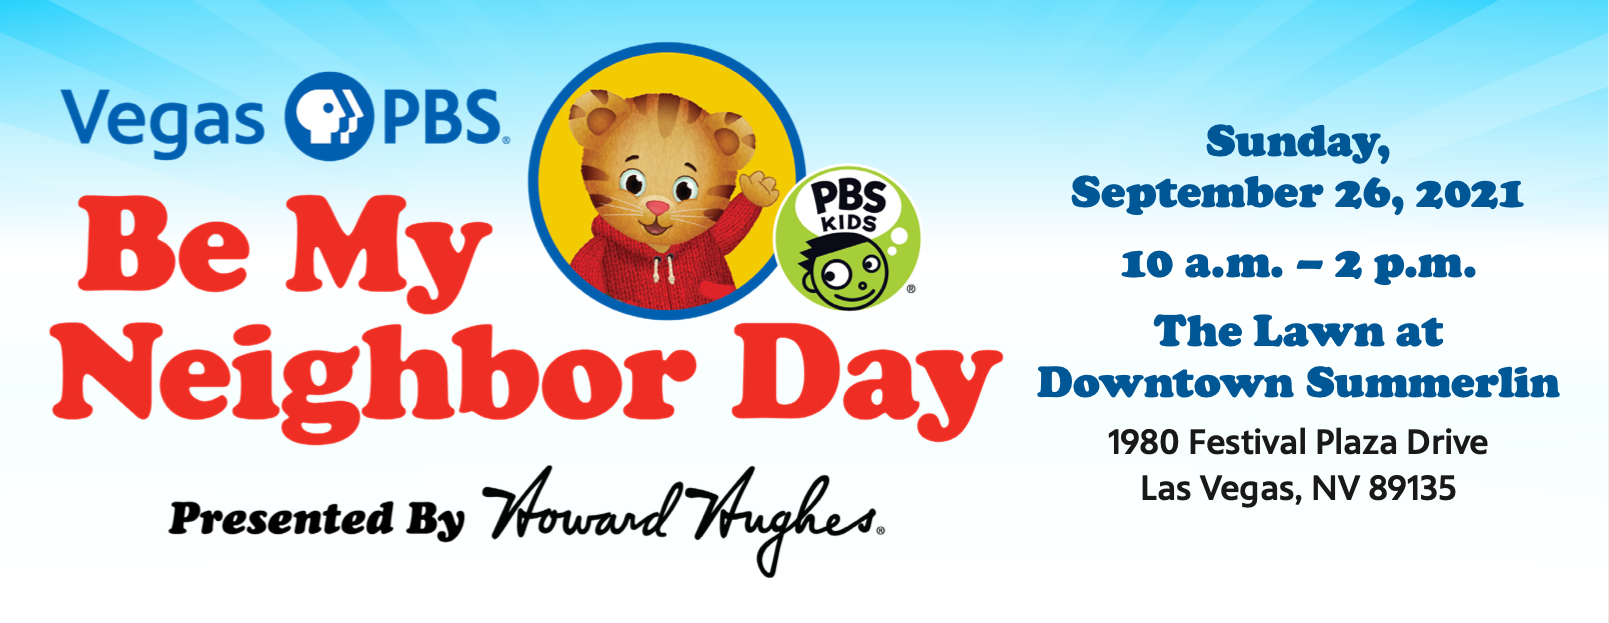 PBS-Be my neighbor day